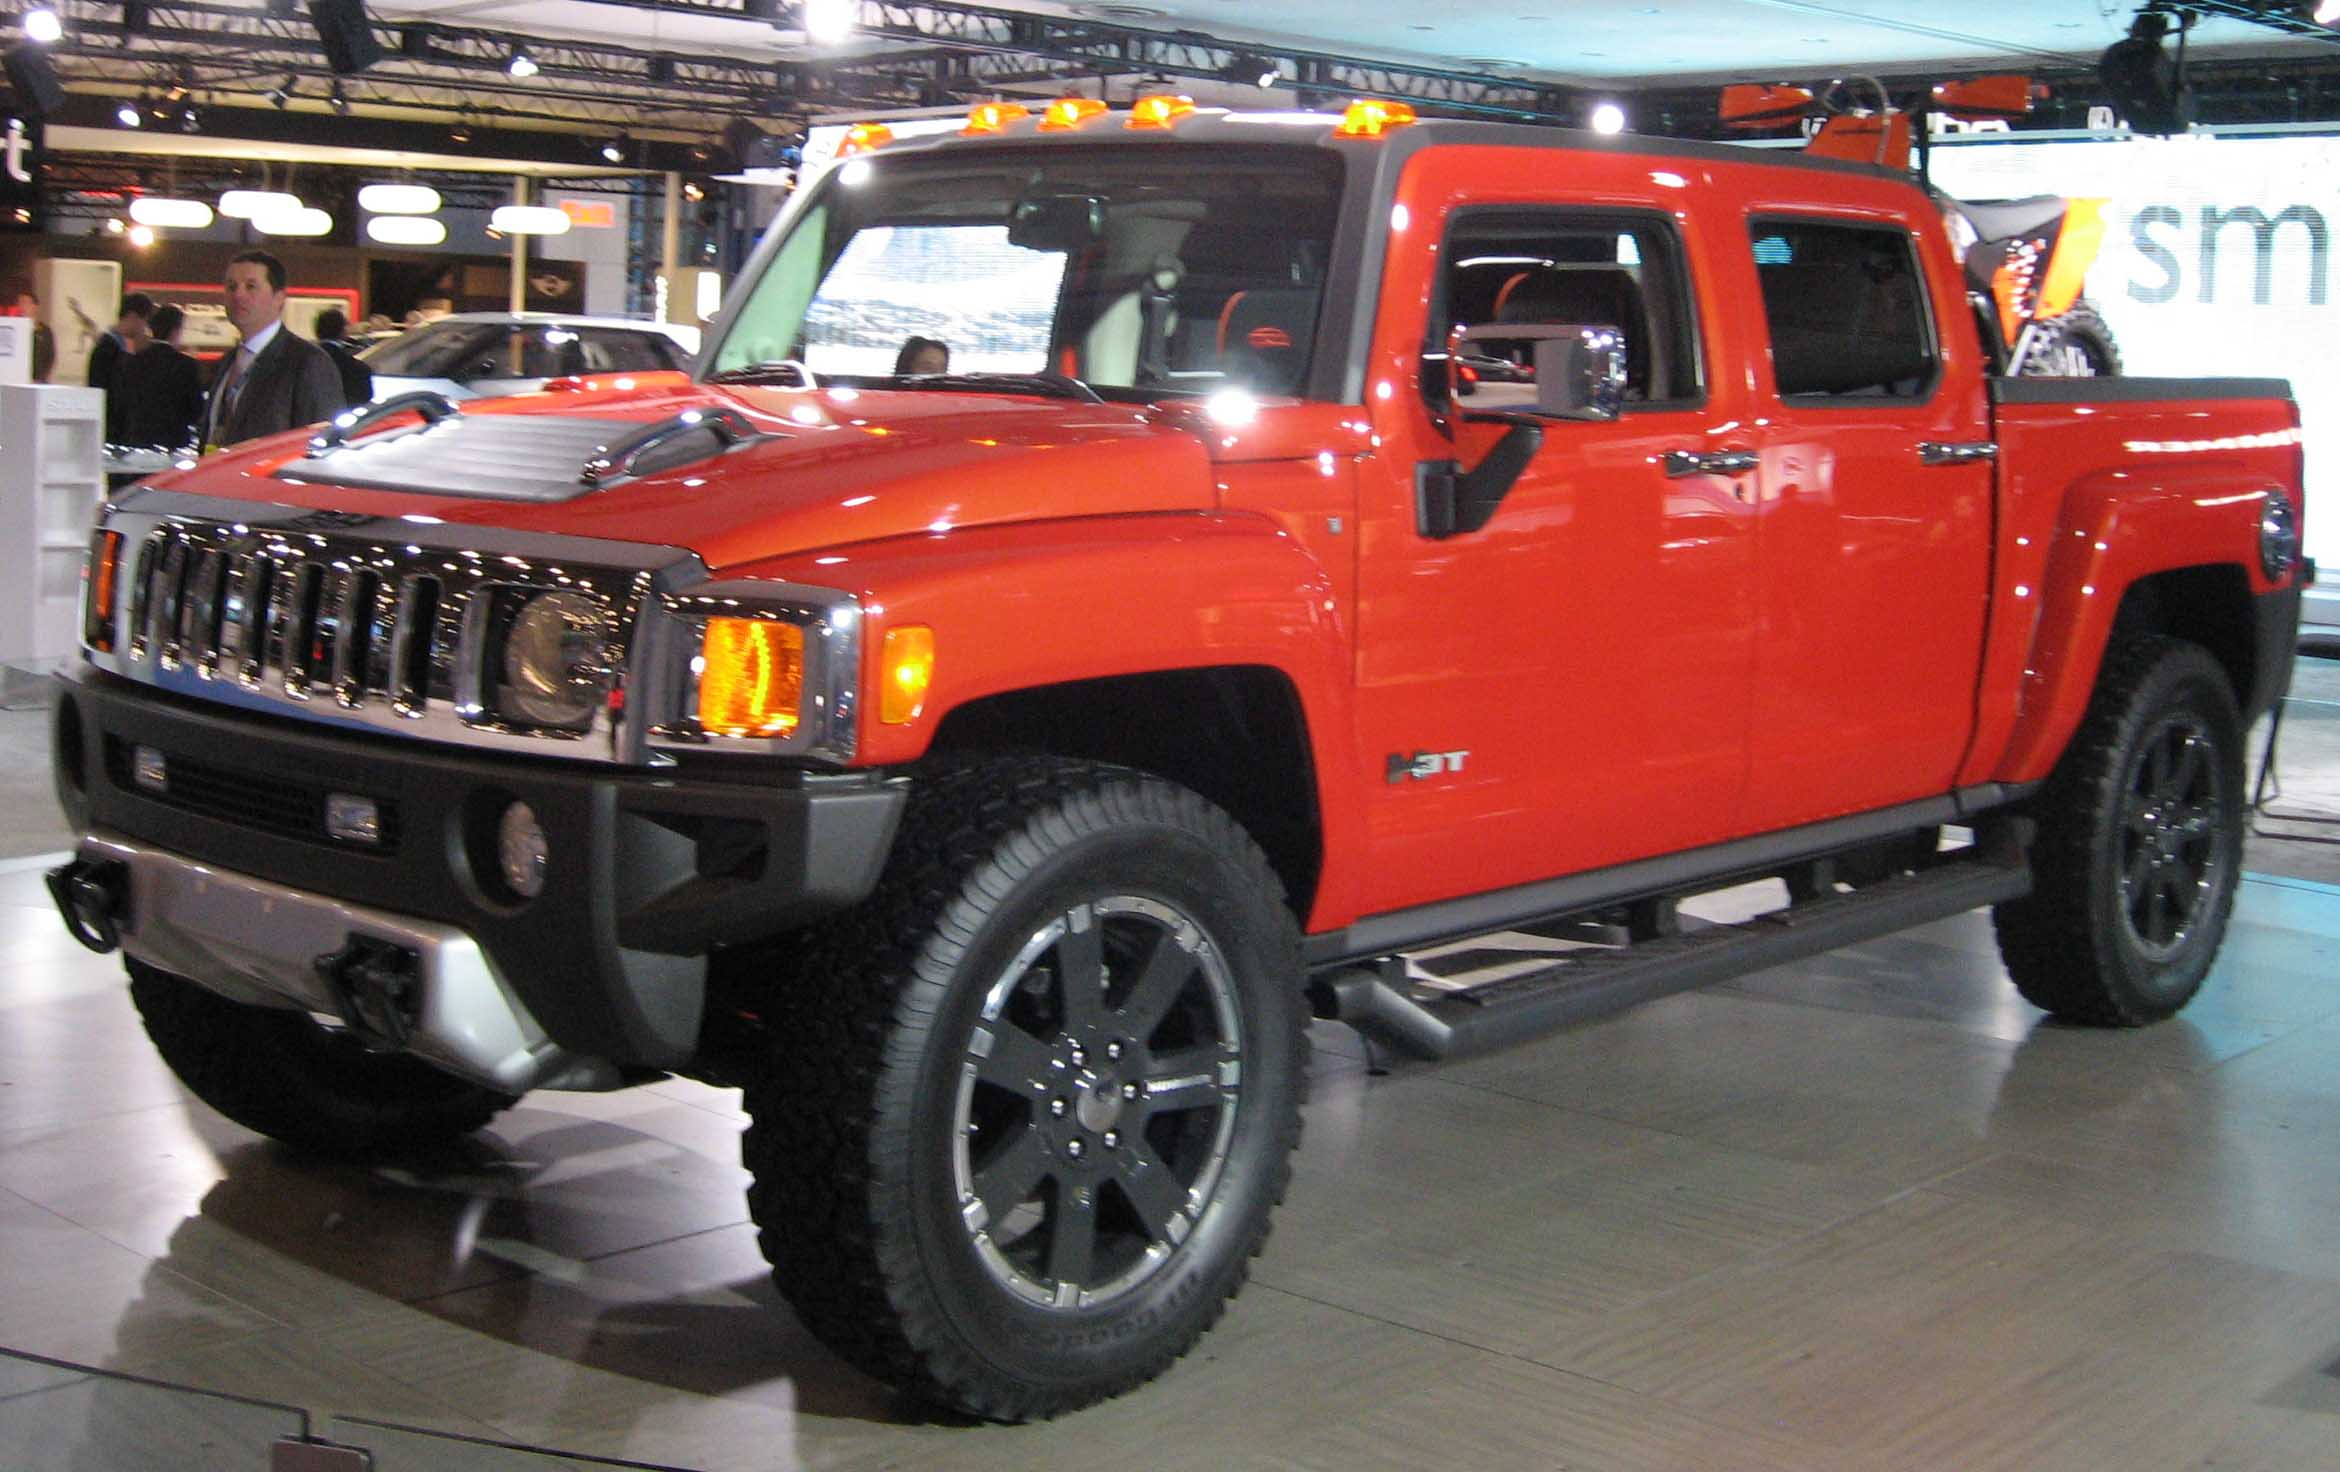 File:Hummer H3T NY.jpg - Wikipedia, the free encyclopedia